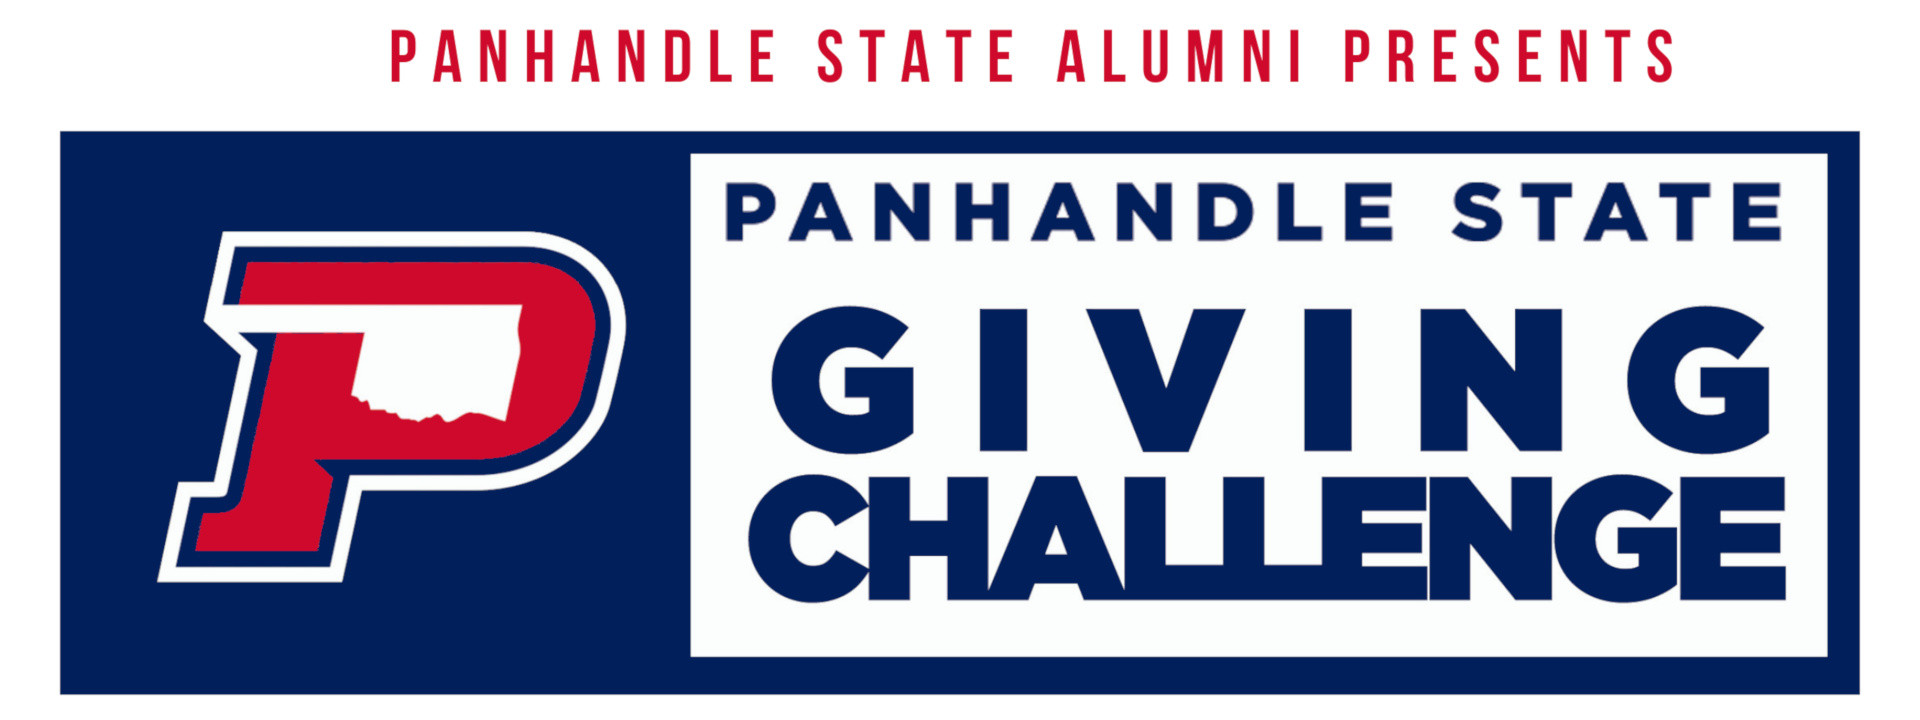 Panhandle State Giving Challemge